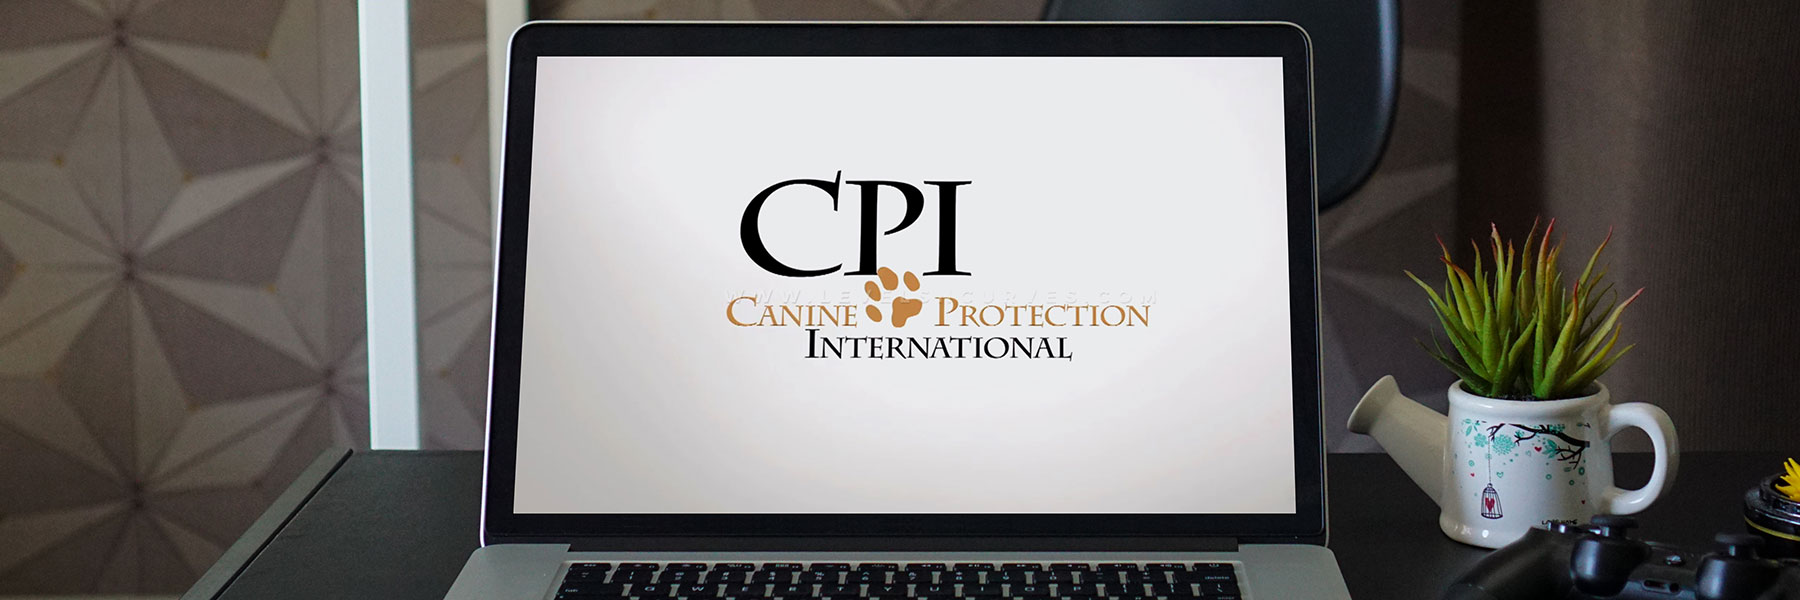 Canine Protection International